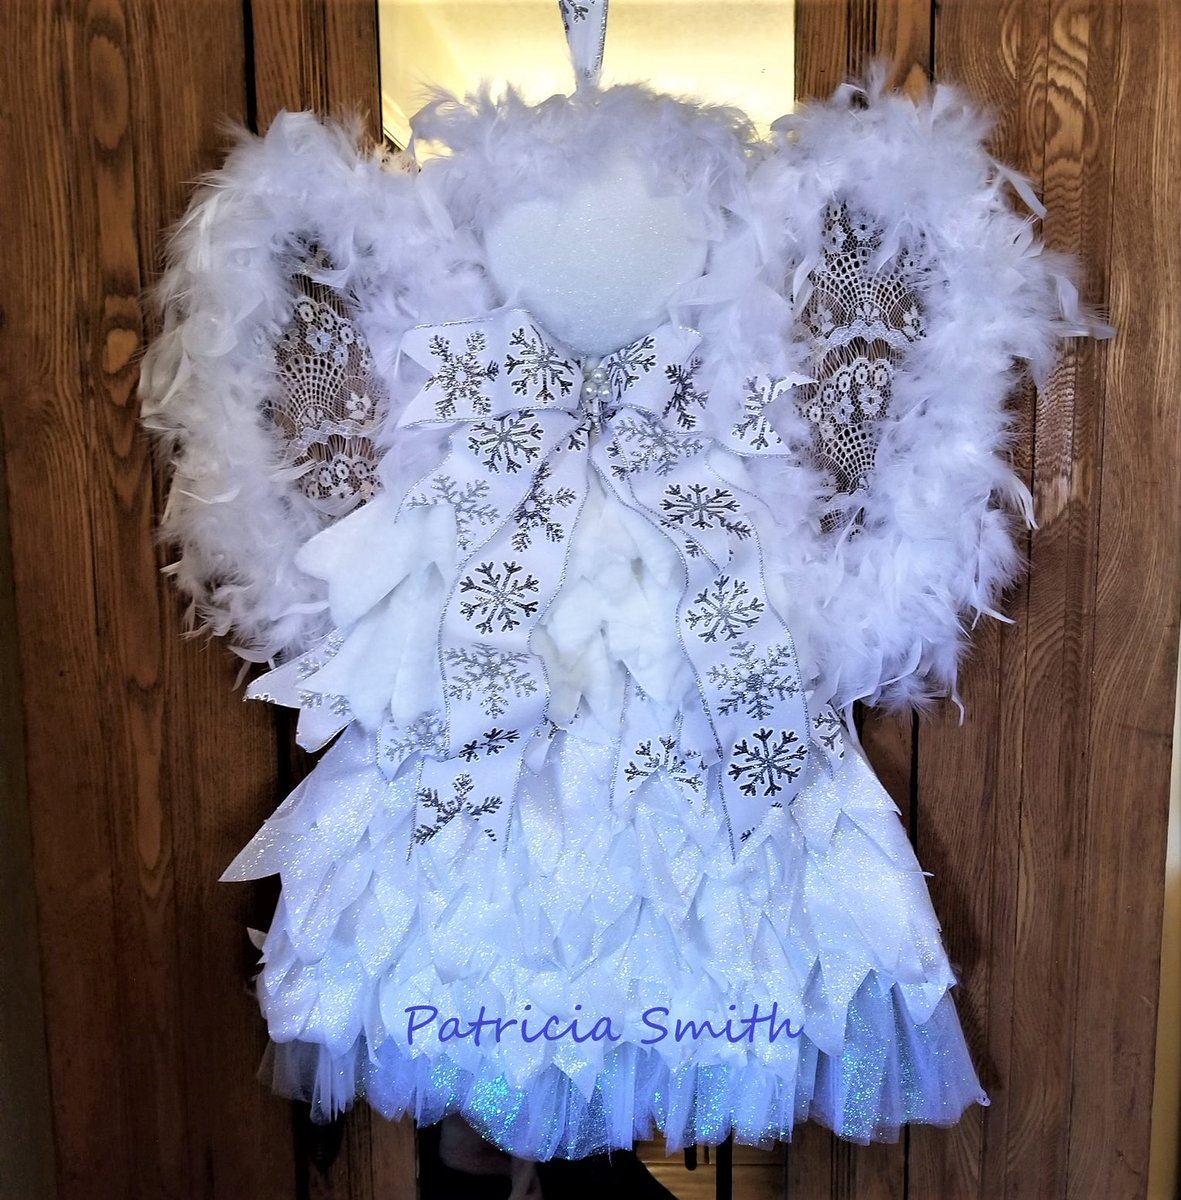 I am in LOVE with this #angel #wreath, this is just sooo beautiful! Made by Patricia Smith using the #UITC Triangle Board! #Imadethis #DIY #DIYwreath #makeitwithMichaels   Triangle Board by UITC  https://uniqueinthecreek.com/collections/wreath-frame-board/products/triangle-wreath-board-wreath-frame?variant=17673013821498 …   Triangle Board Tutorials  https://www.youtube.com/playlist?list=PLFetCpLC4VkbD4zksFnApsrqEC0IwN316 …pic.twitter.com/g35zudQcxJ